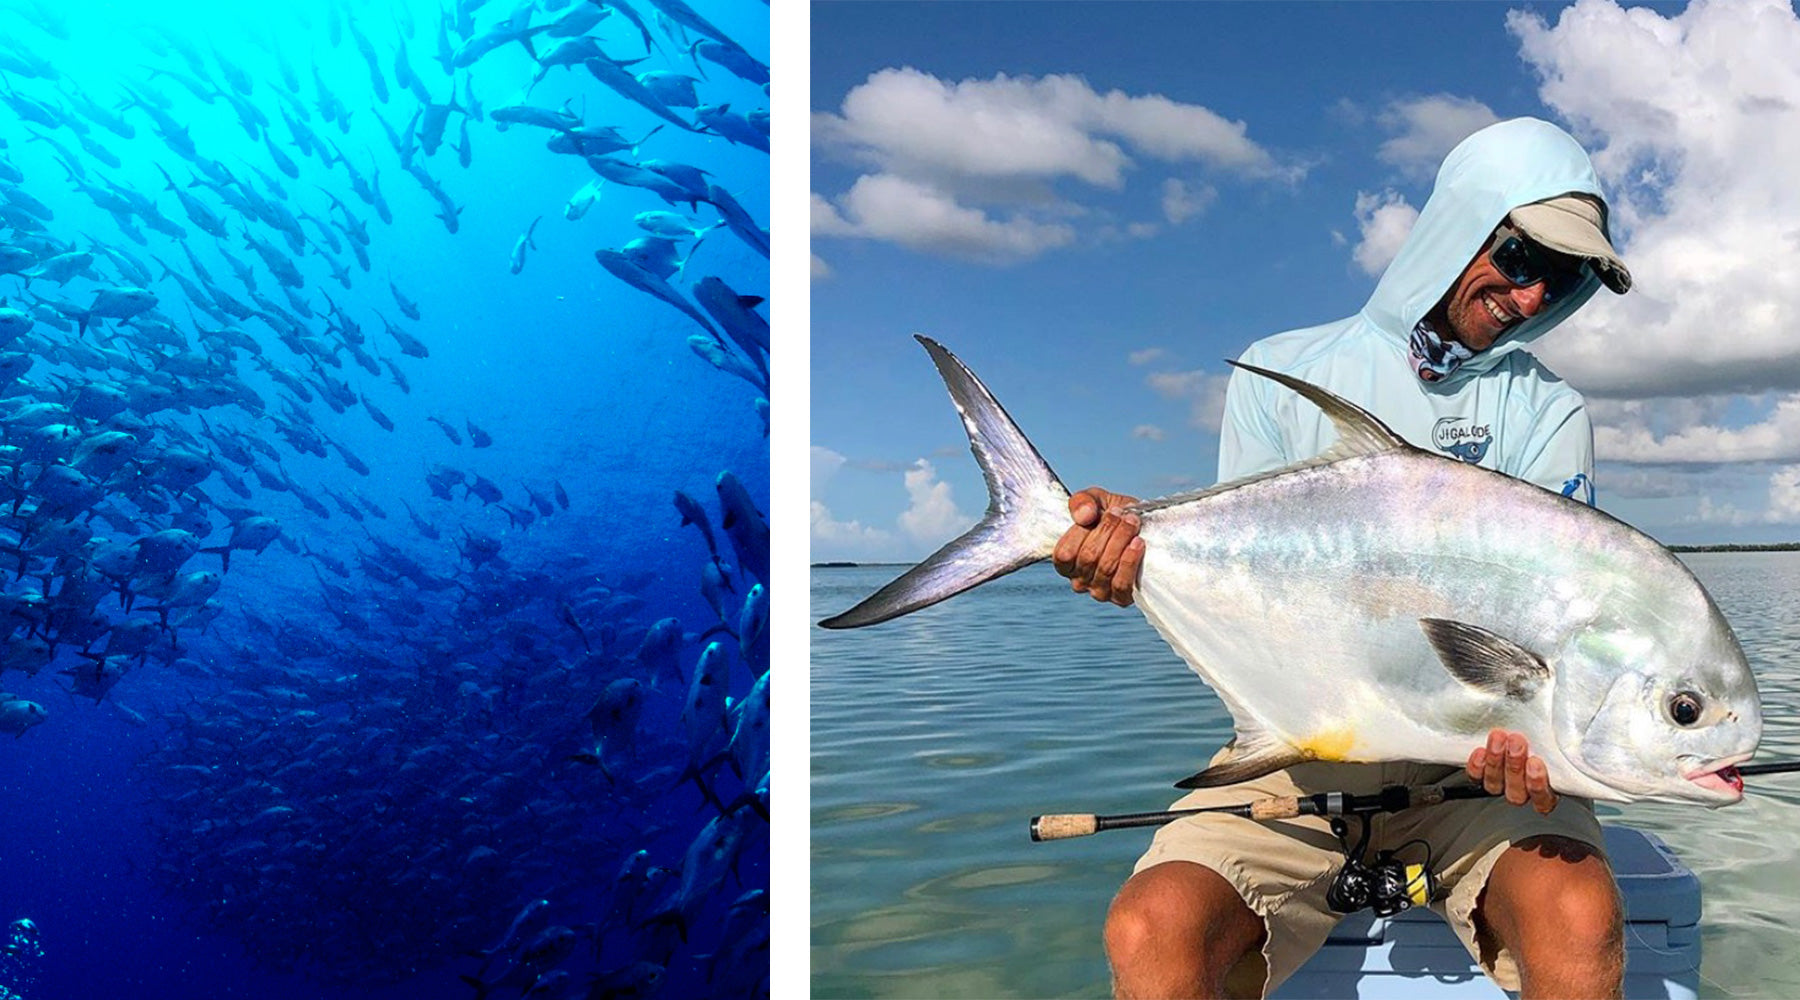 Permit Fish Spawning at the Western Dry Rocks and a fisherman holding a large permit in the Florida Keys while wearing the Jigalode Fishing Performance Sun Hoodie